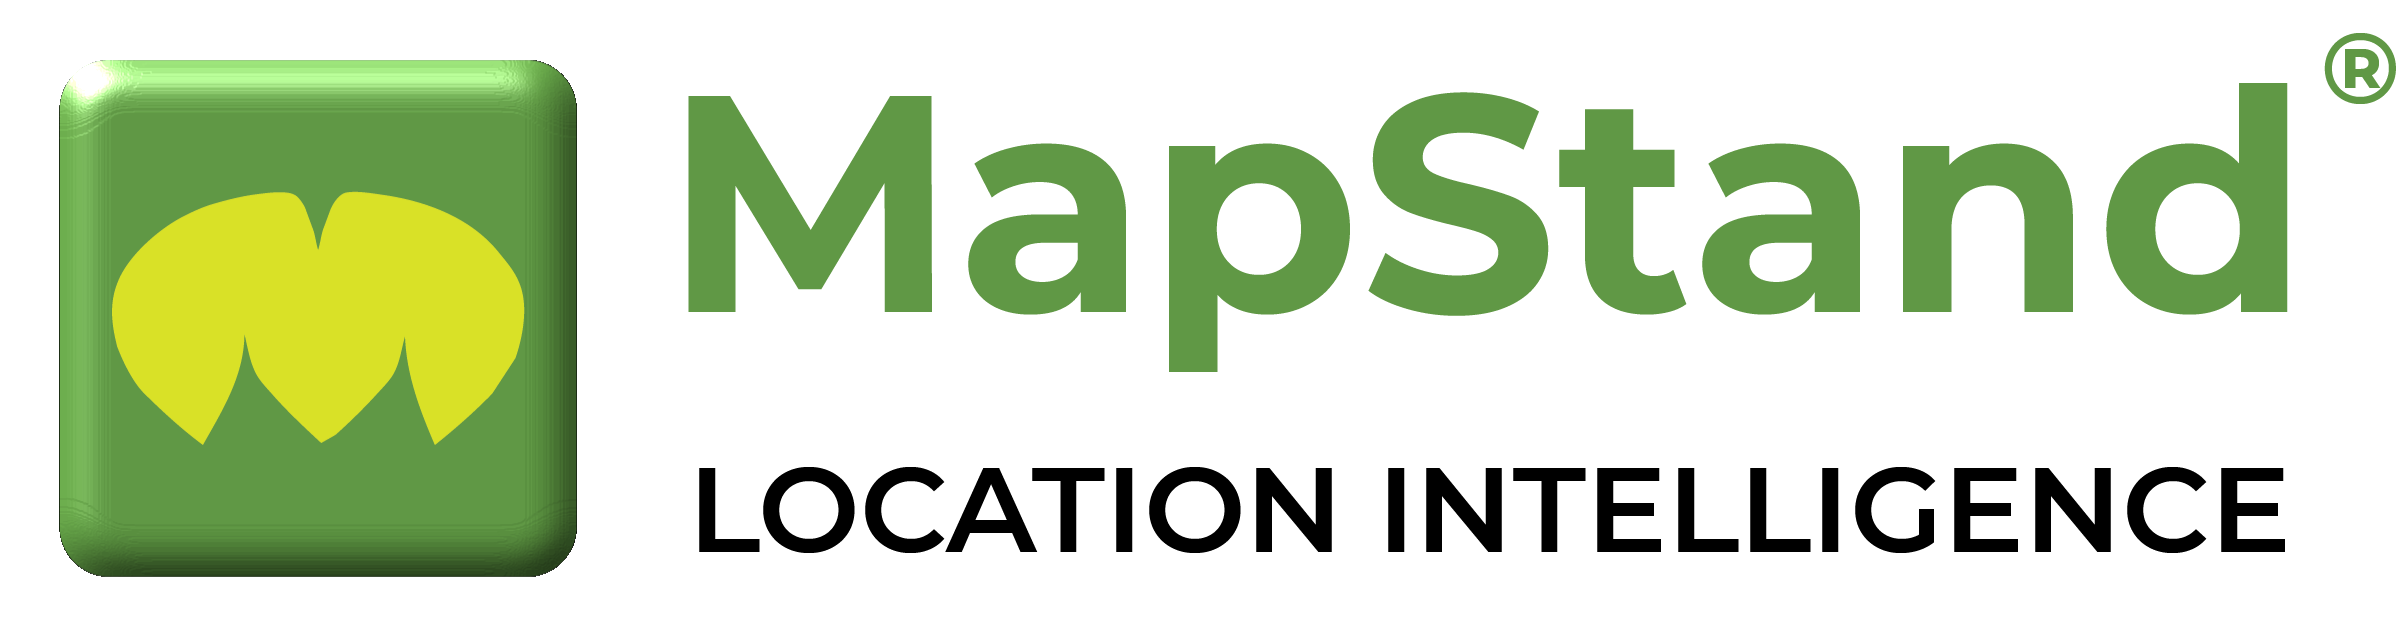 MapStand Support Portal Help Center home page